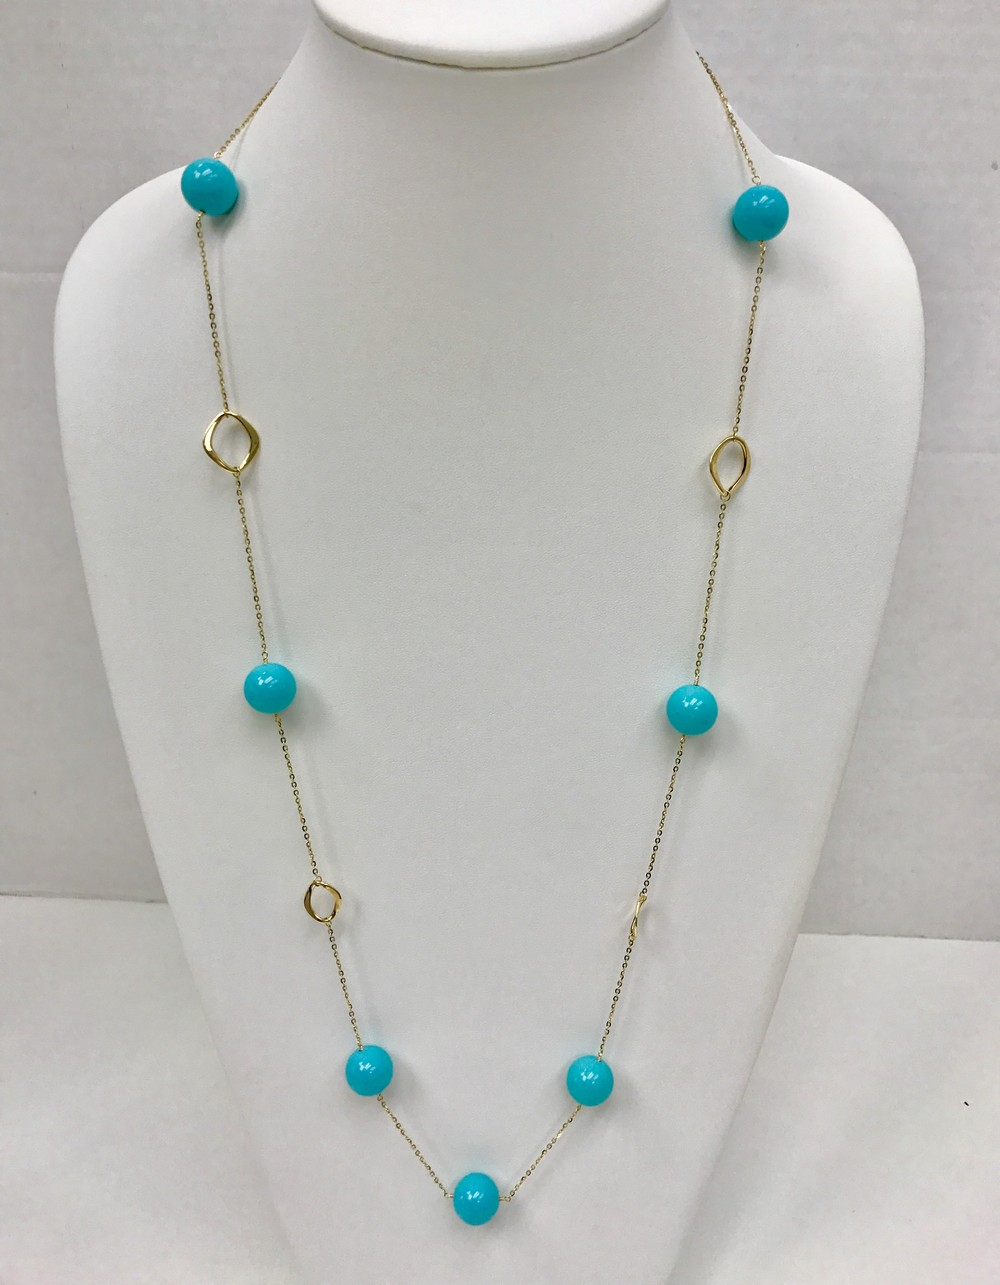 Geometric Turquoise Gold Chain Necklace